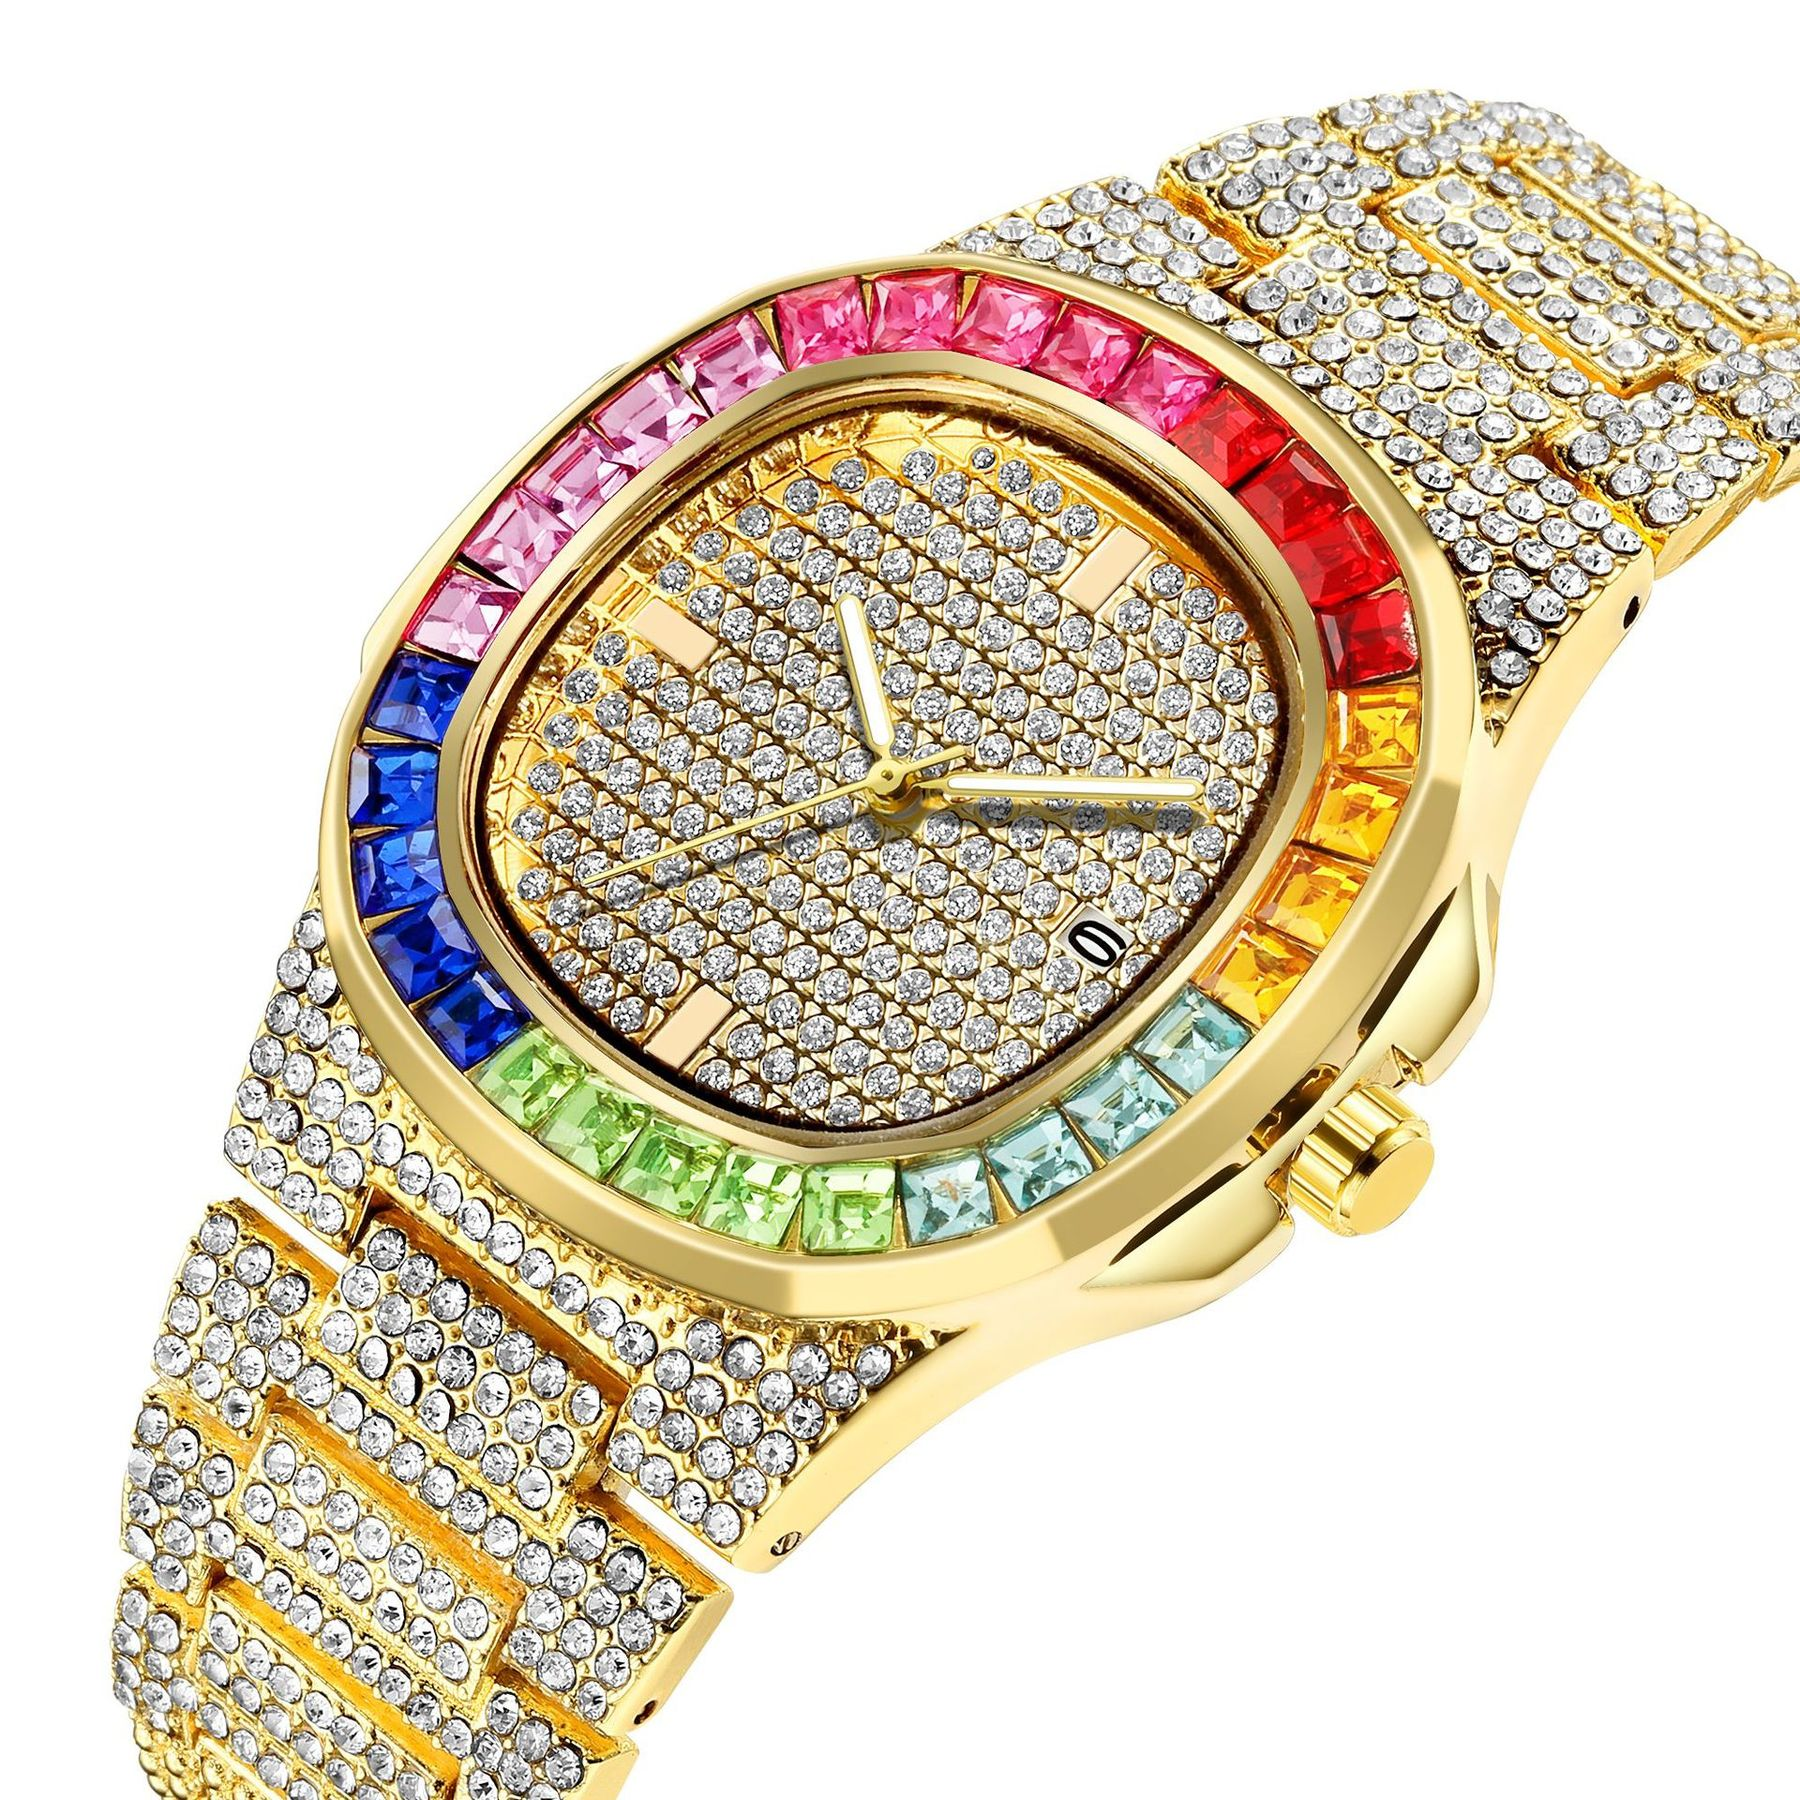 Luxury Iced Out Watch Gold Diamond Watch Top Brand for Men Square Quartz Waterproof Wristwatch Relogio Masculino Men Watches watch for women top brand luxury iced out watch diamond watch for men iced out cuban link chain necklace wristwatch man hiphop